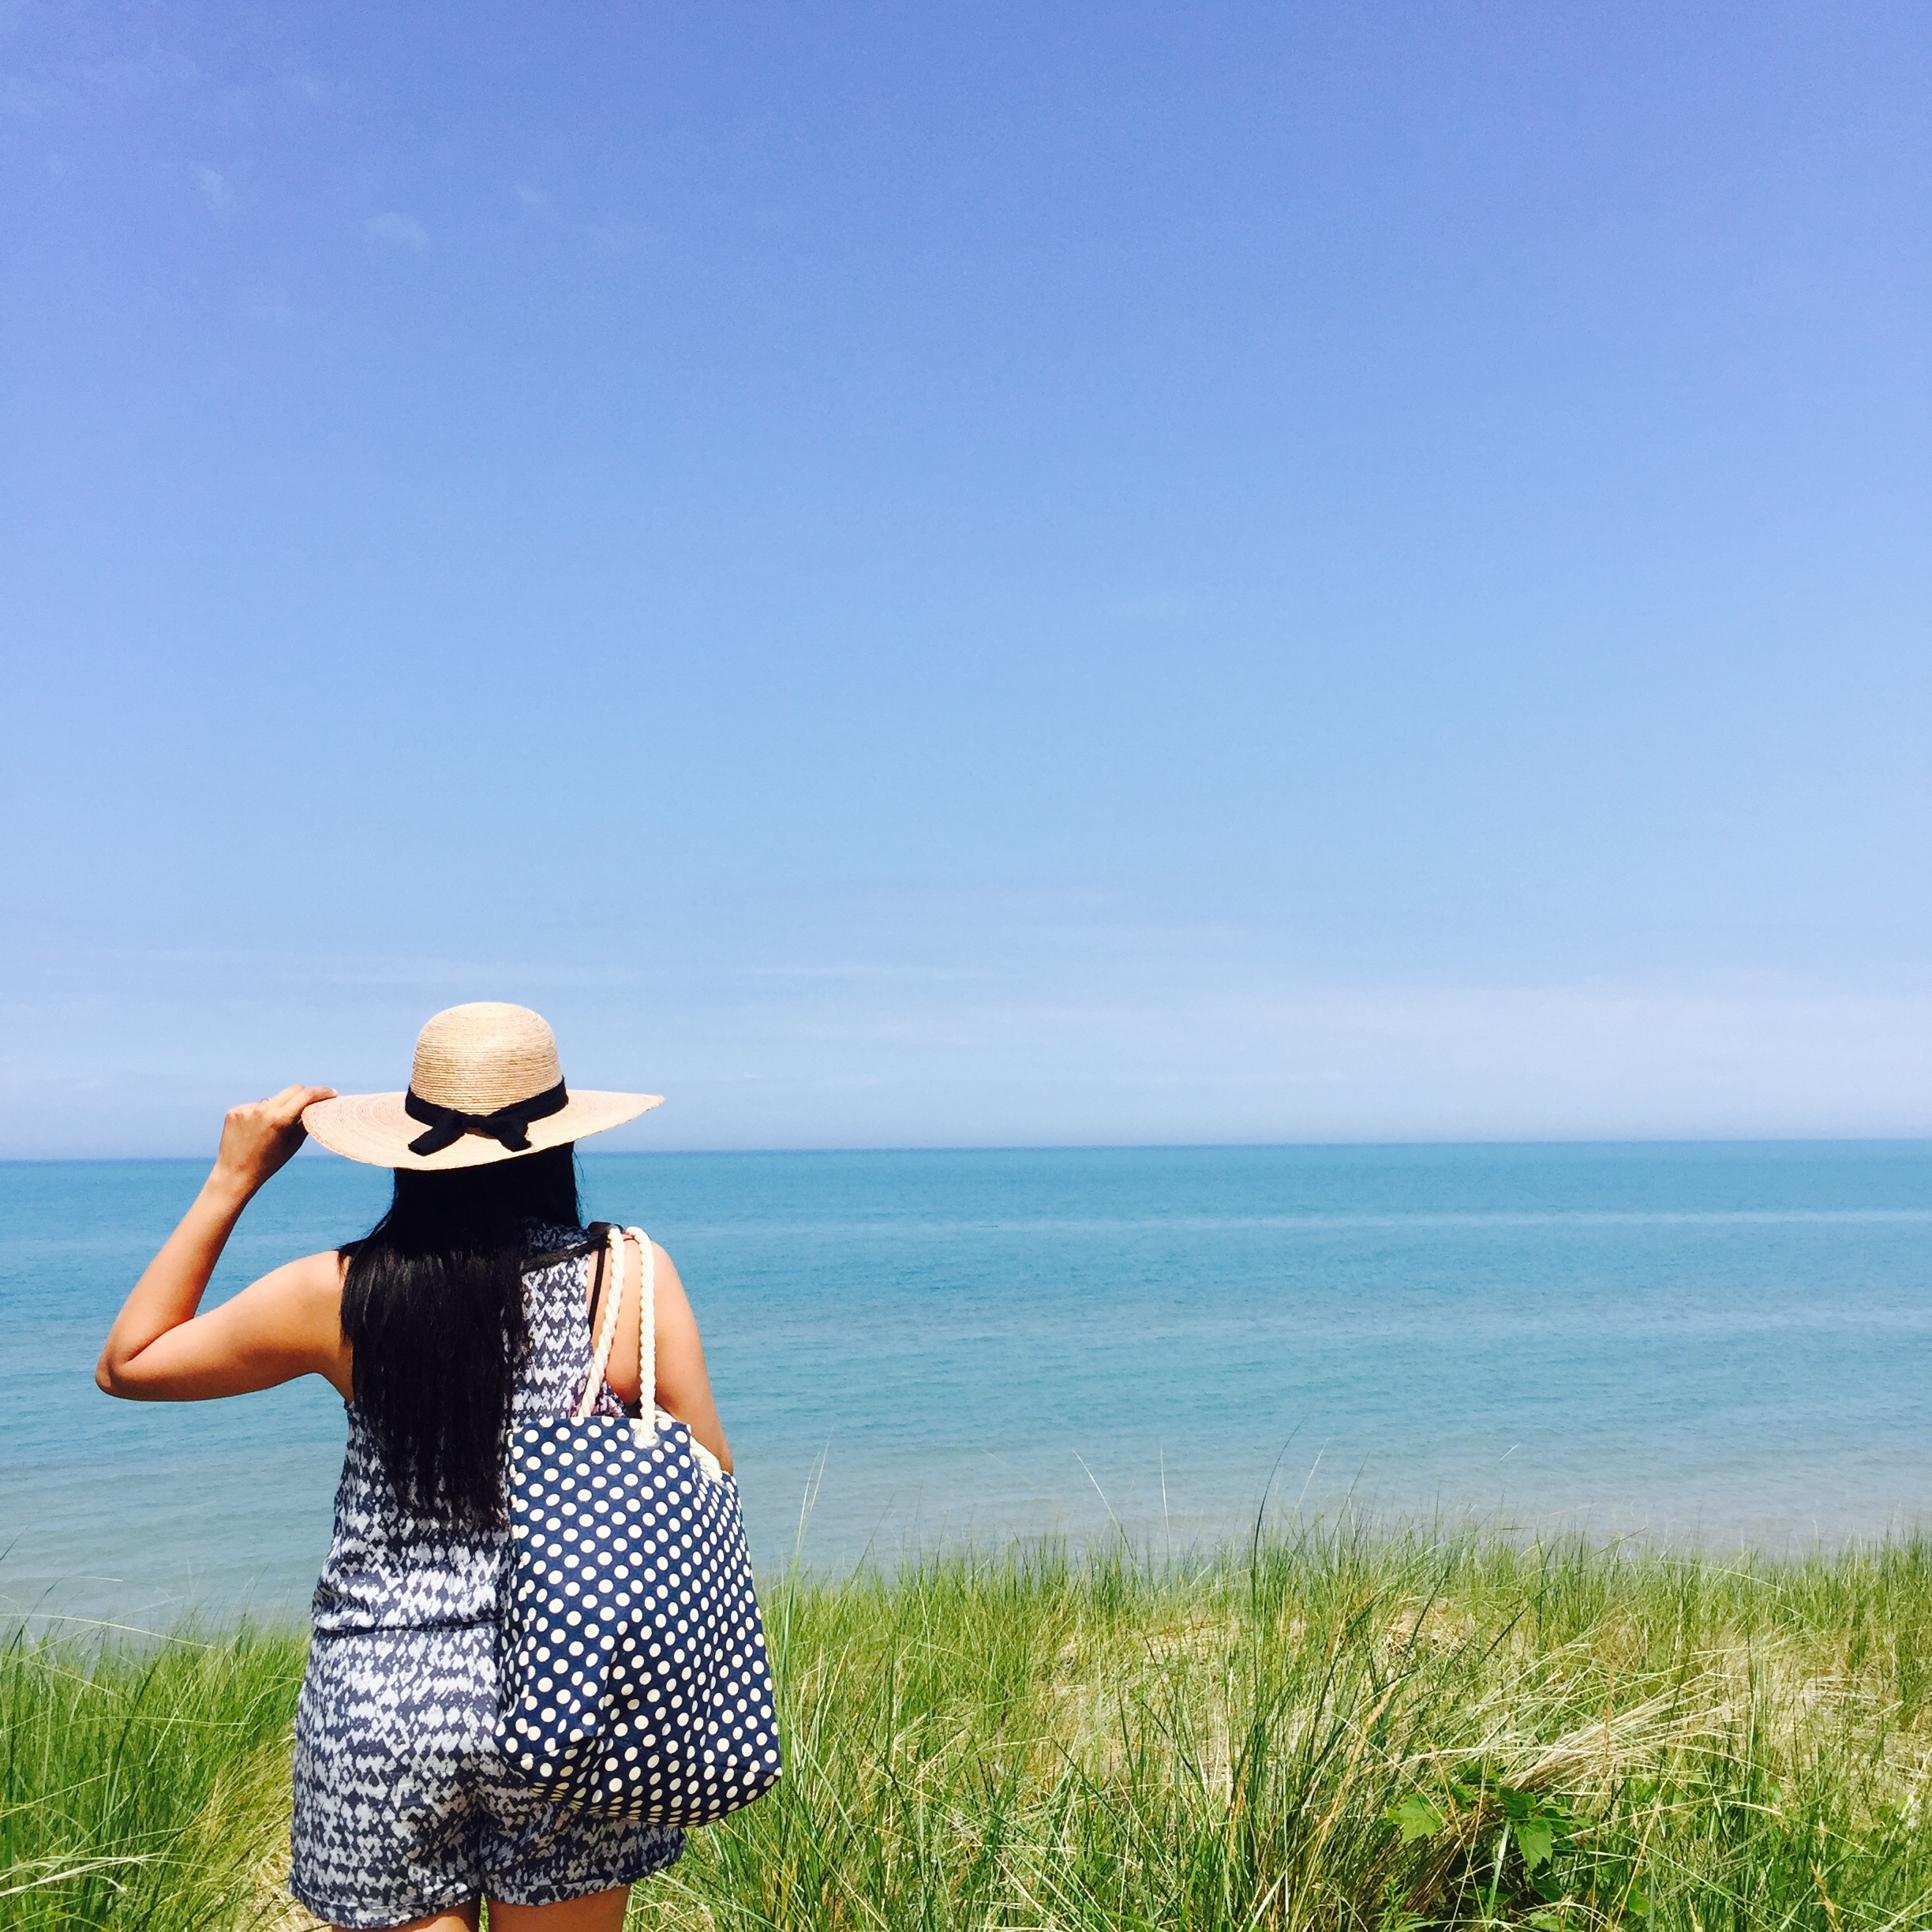 Angelie Sood in Pinery Provincial Park, Blue Flag Beach, Ontario